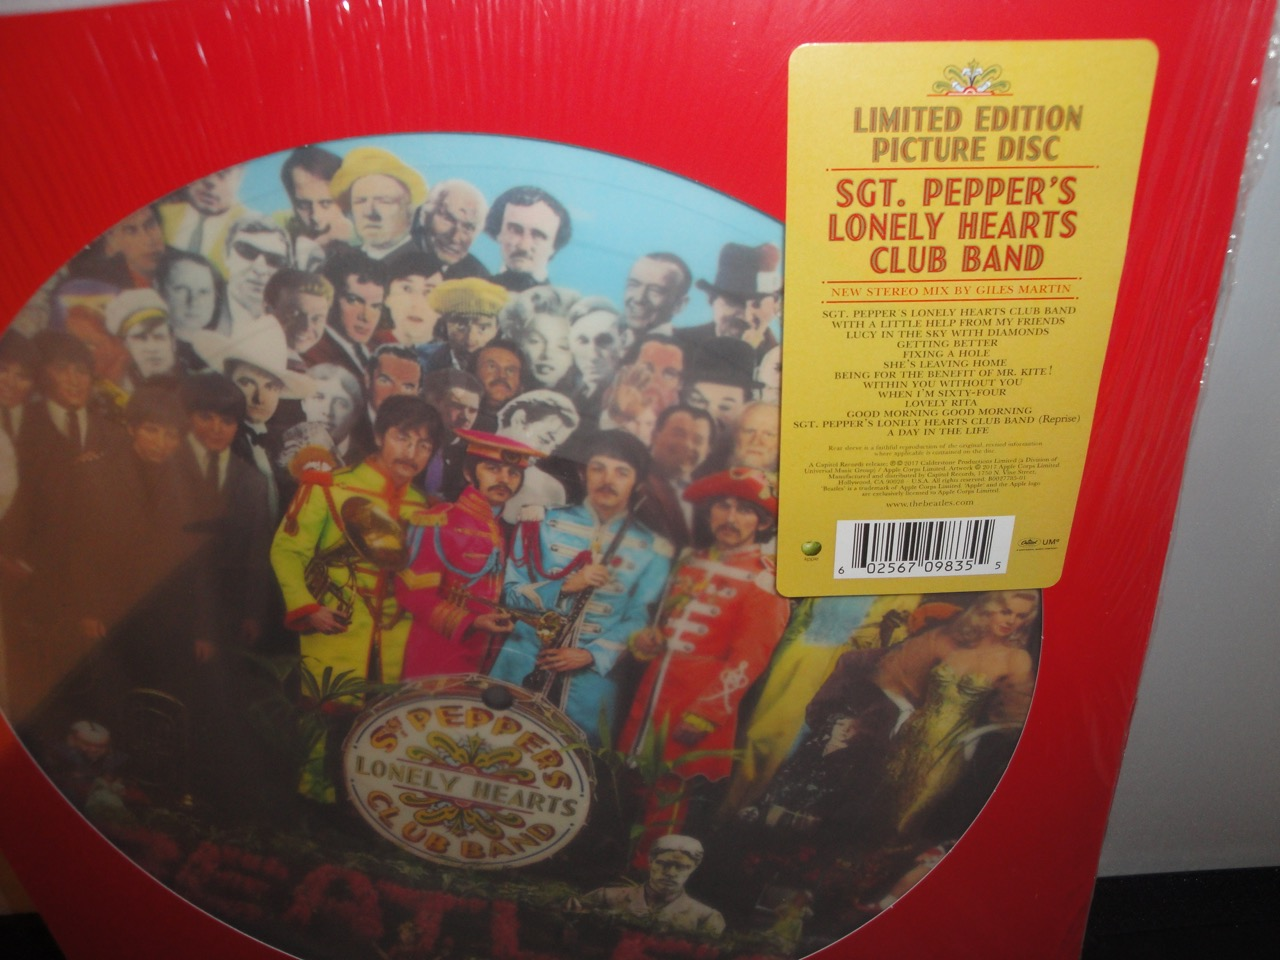 The Beatles - Sgt Pepper's Lonely Hearts Club Band - Limited Edition Picture Disc, Vinyl, LP, Reissue, 2017